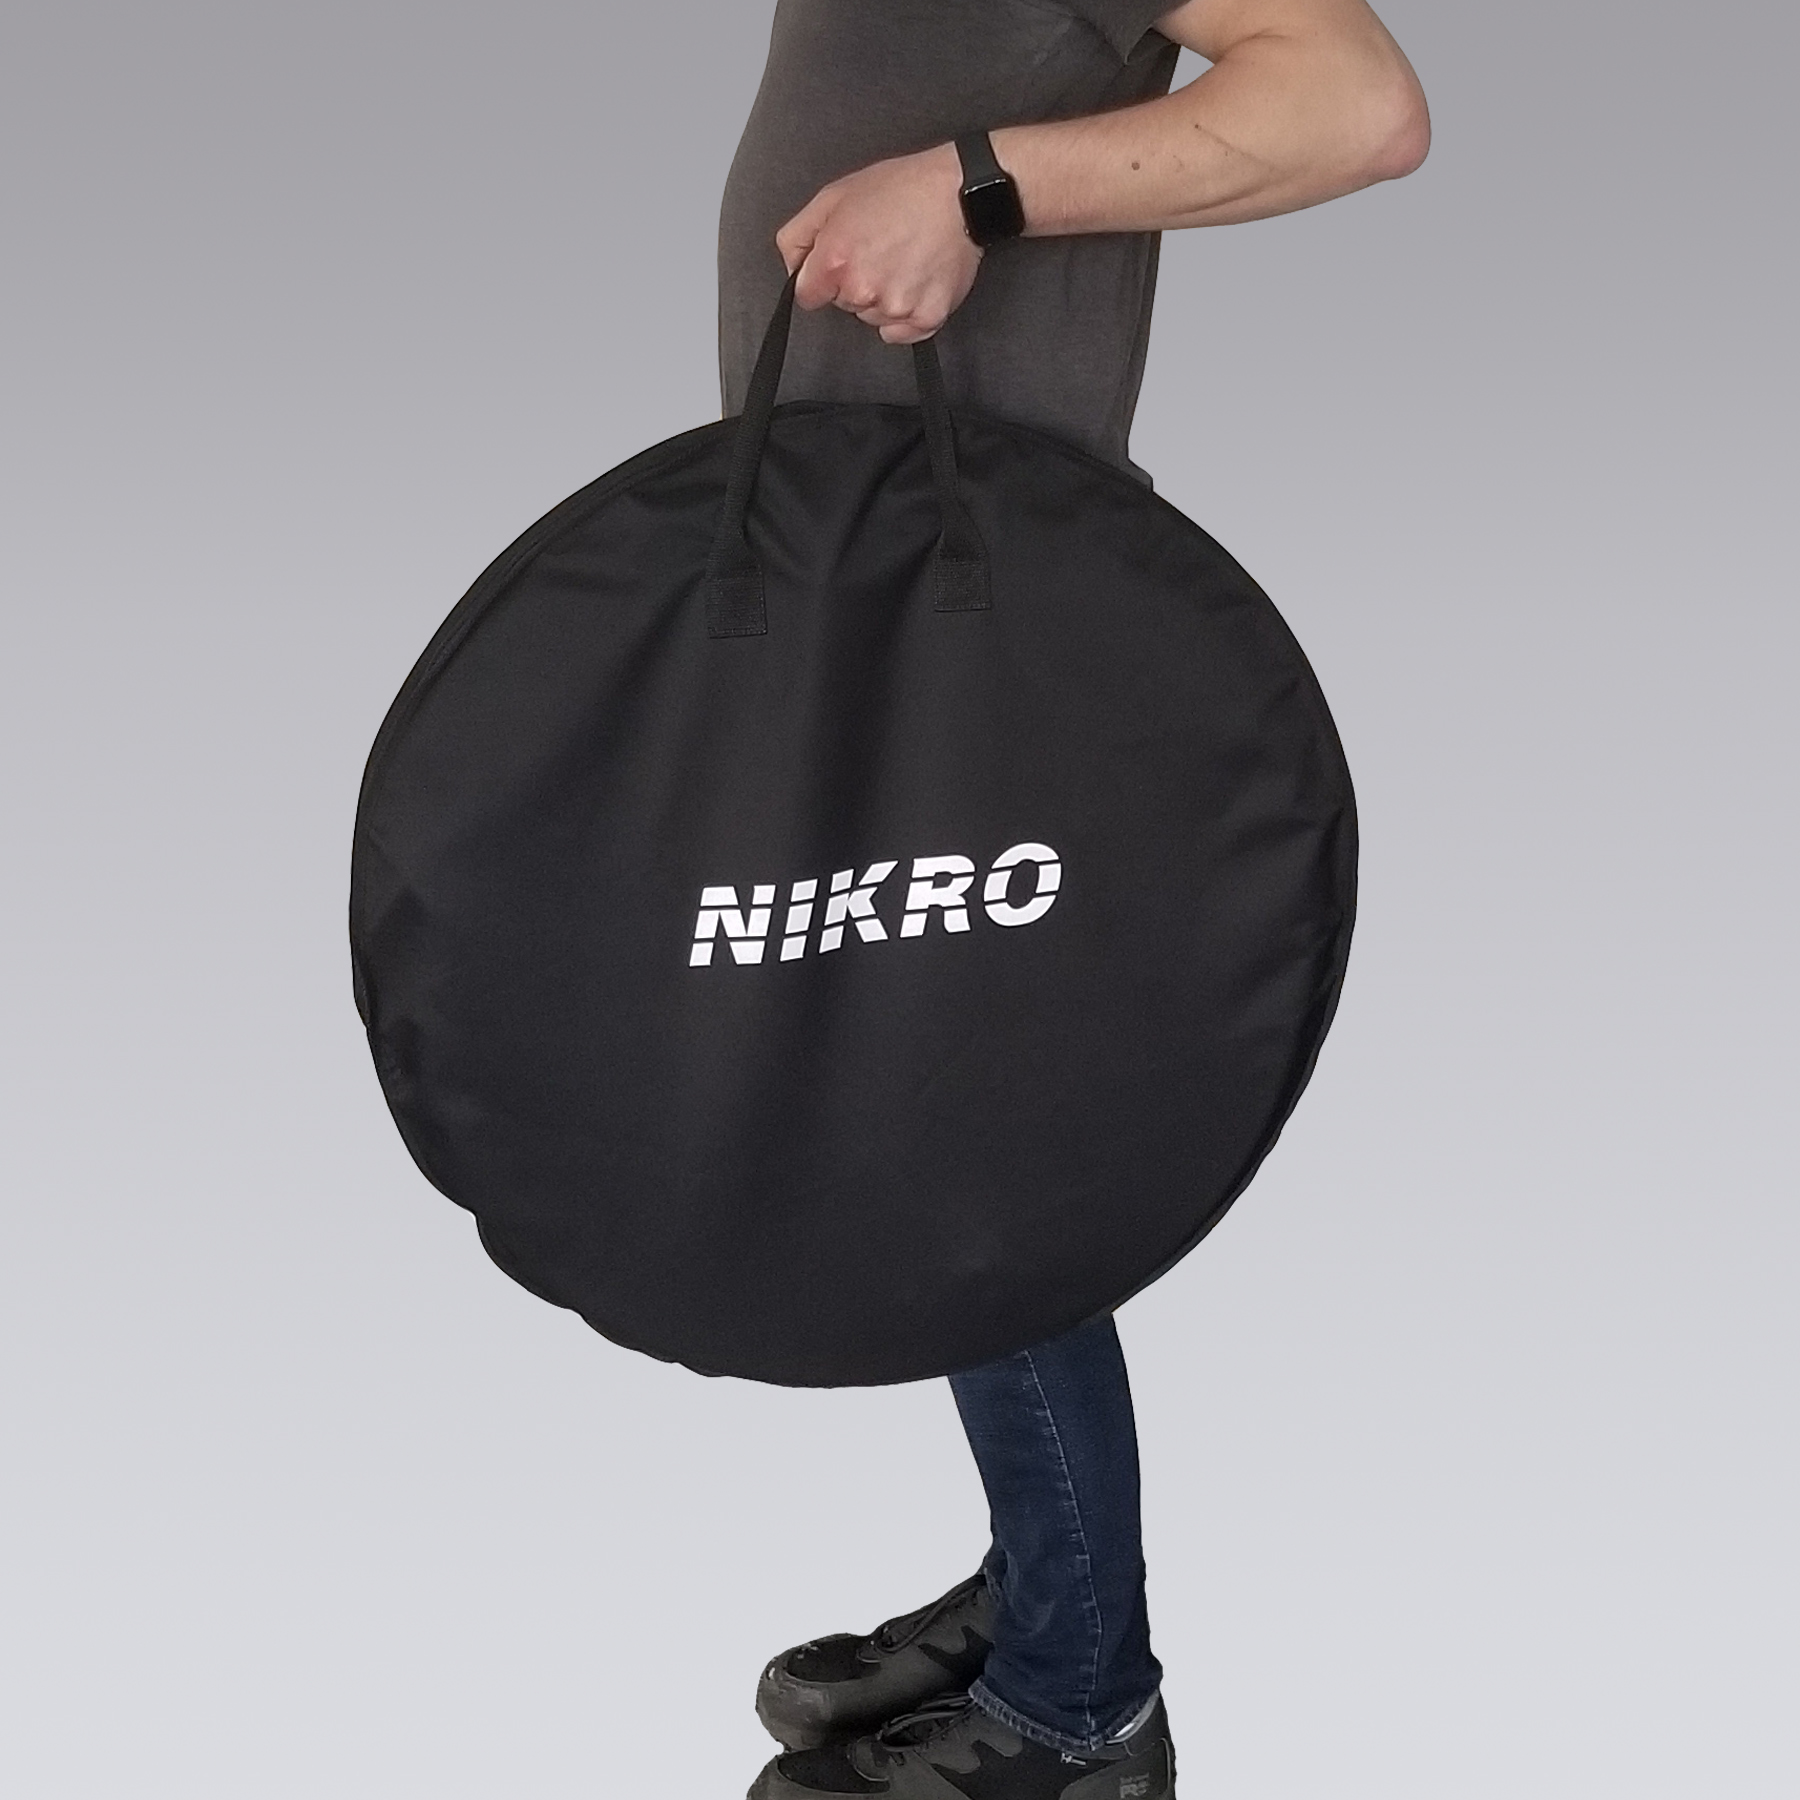 NIKRO 862787 - Carrying Bag - Air Duct Cleaning Equipment & Supplies 